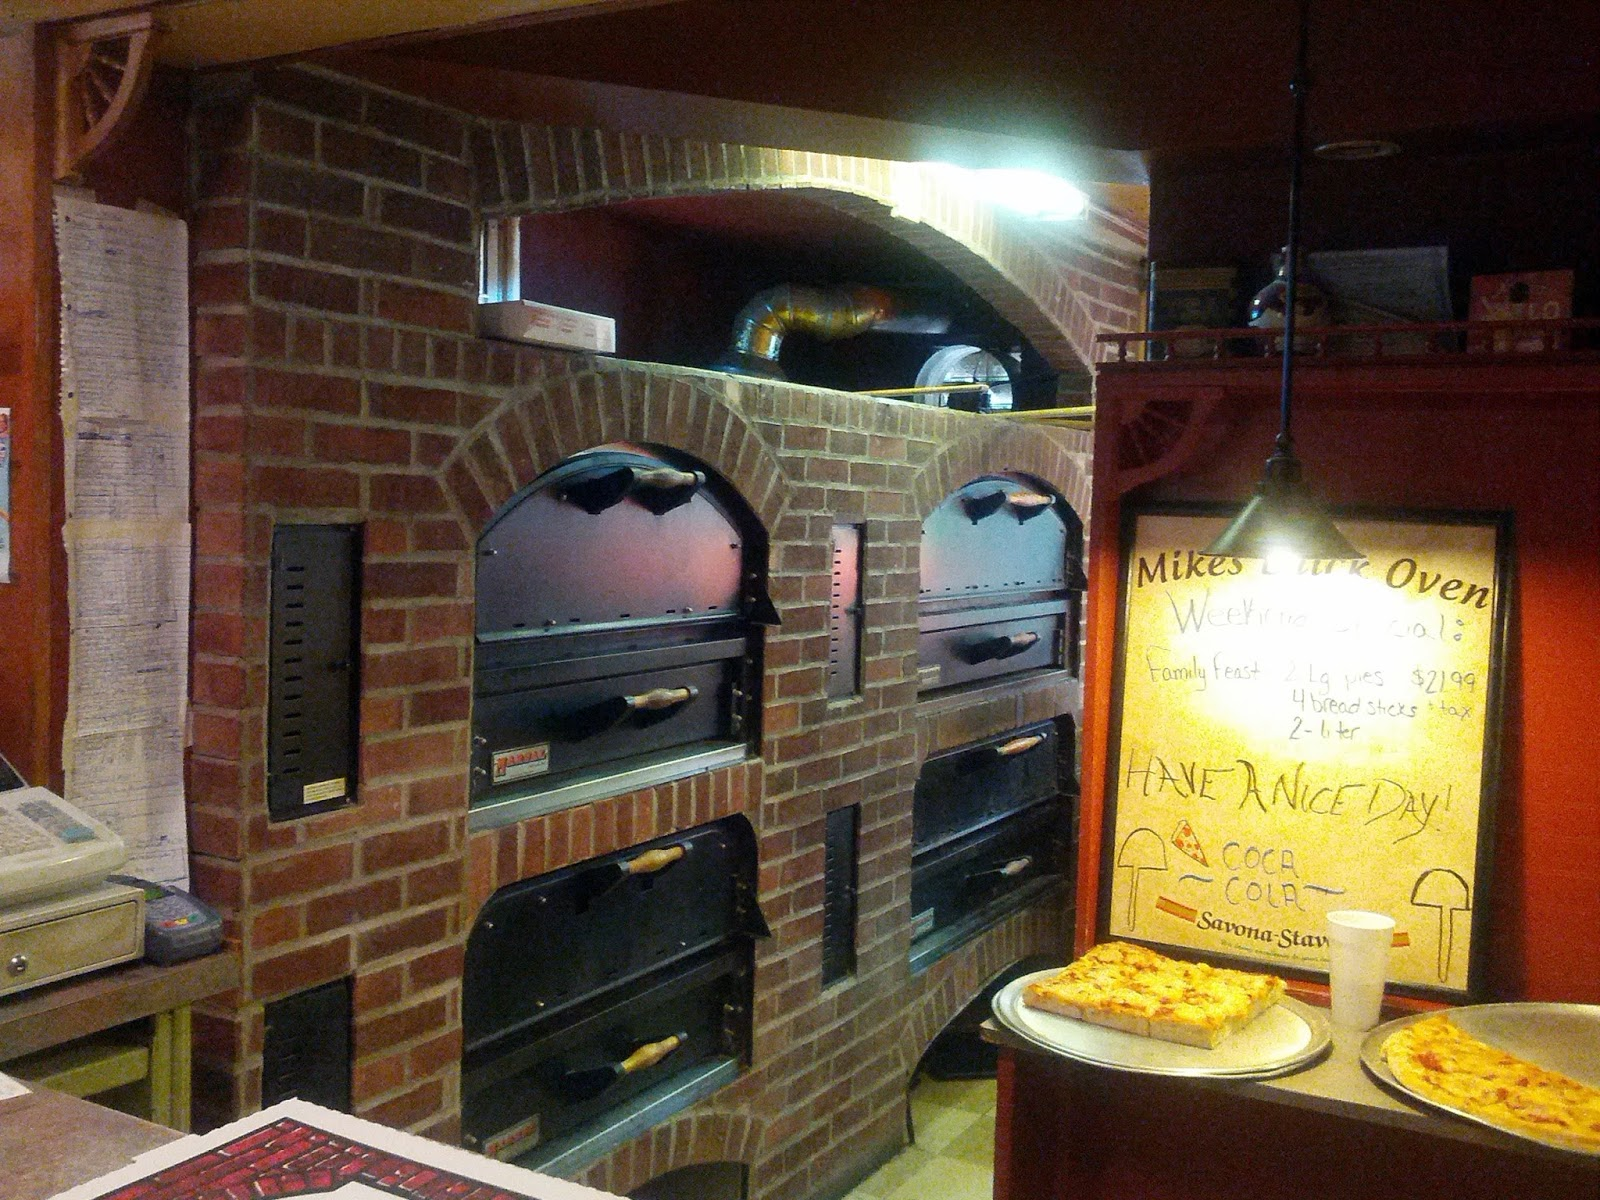 Mike's brick oven pizza coupons